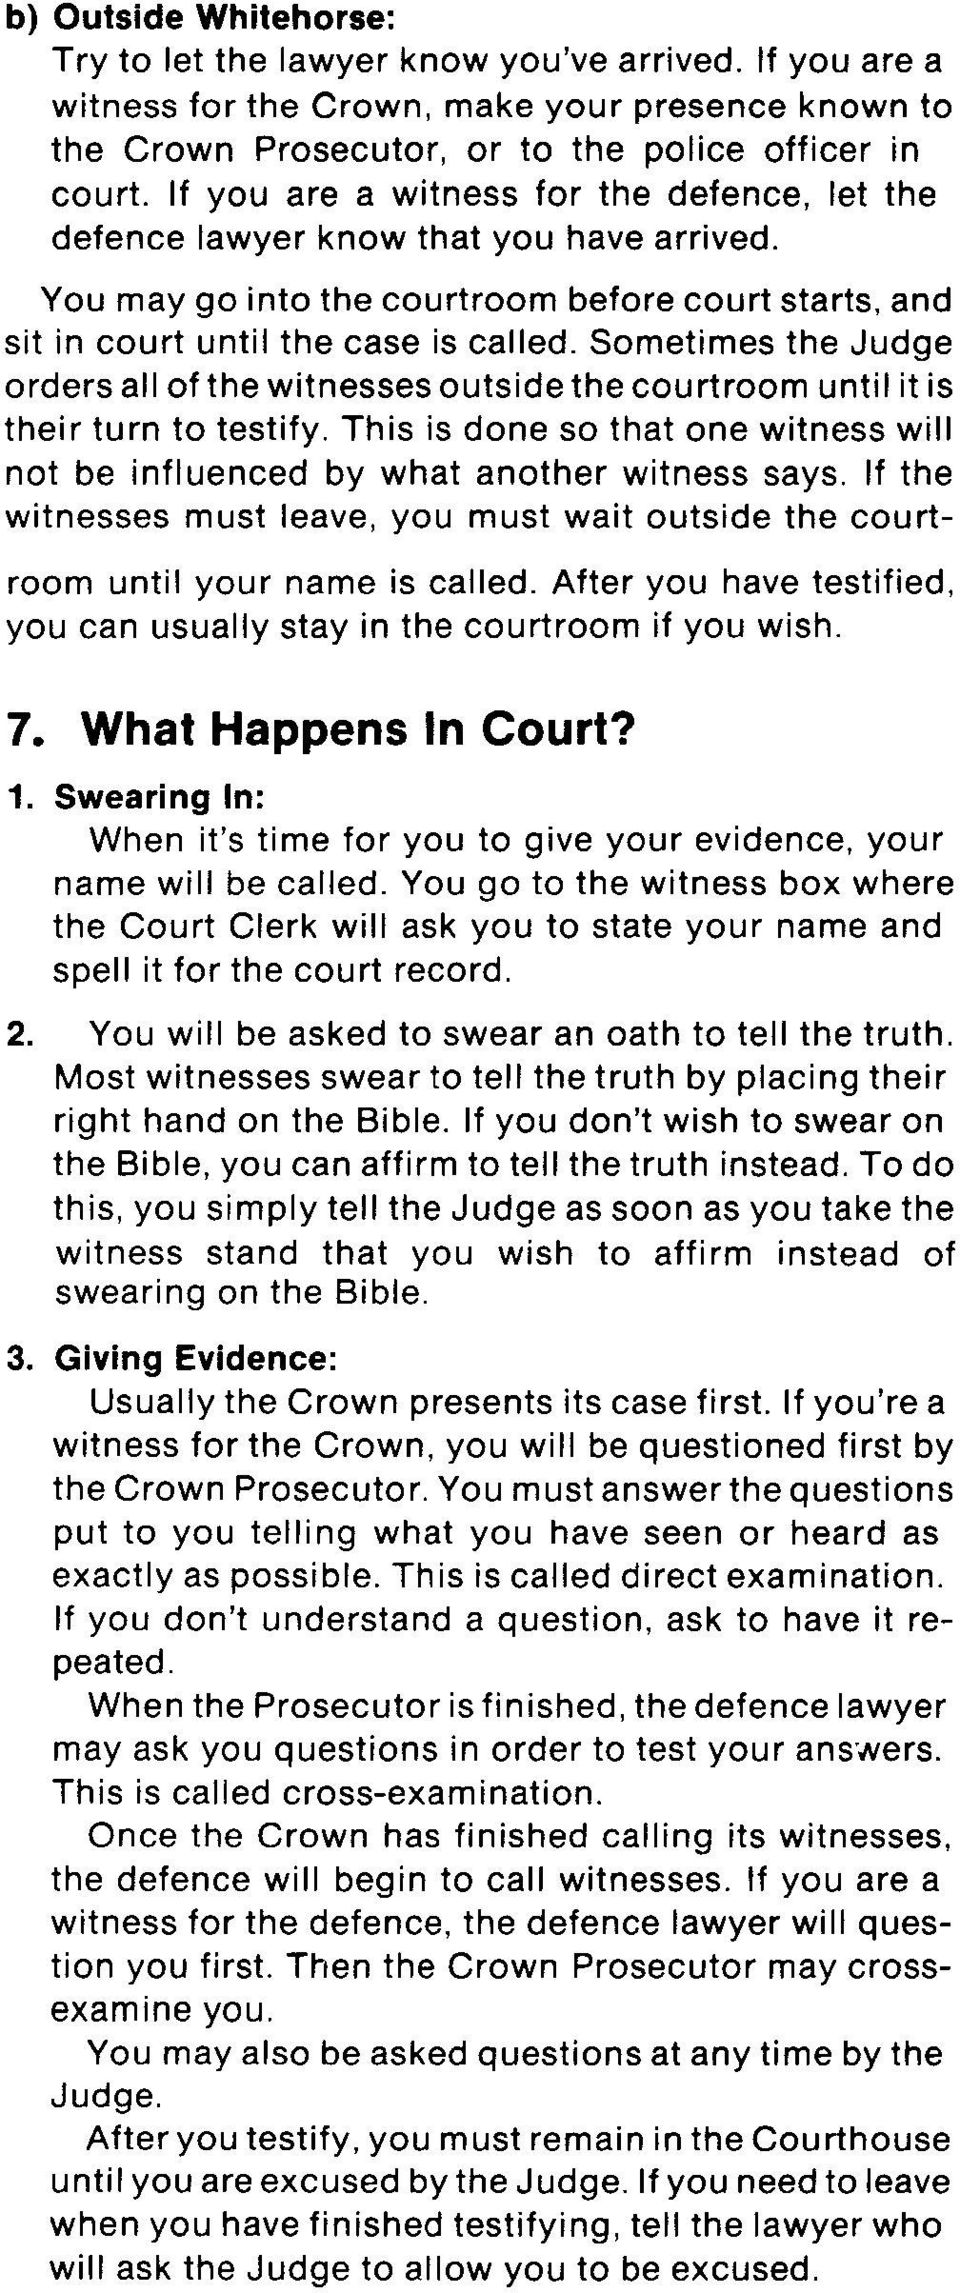 Sometimes the Judge orders all of the witnesses outside the courtroom until it is their turn to testify. This is done so that one witness will not be influenced by what another witness says.